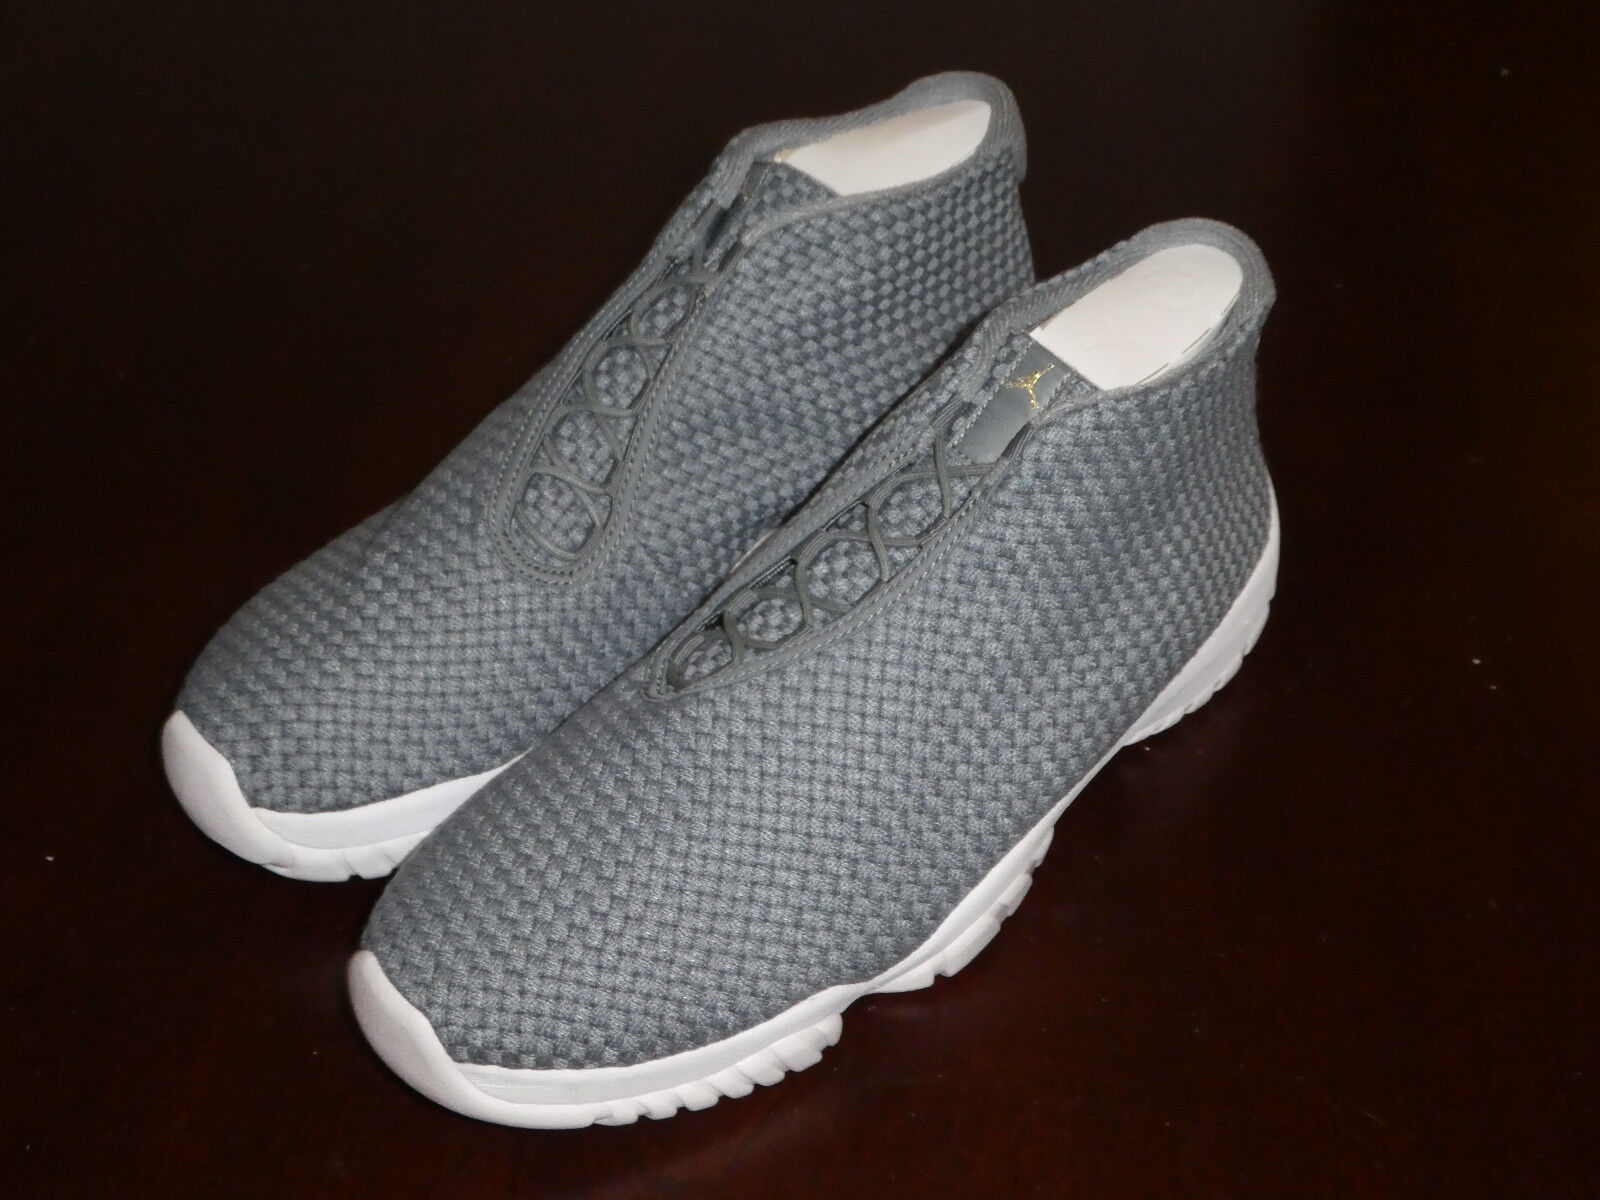 Nike Air Jordan Future mens shoes 656503 003 Cool Grey new